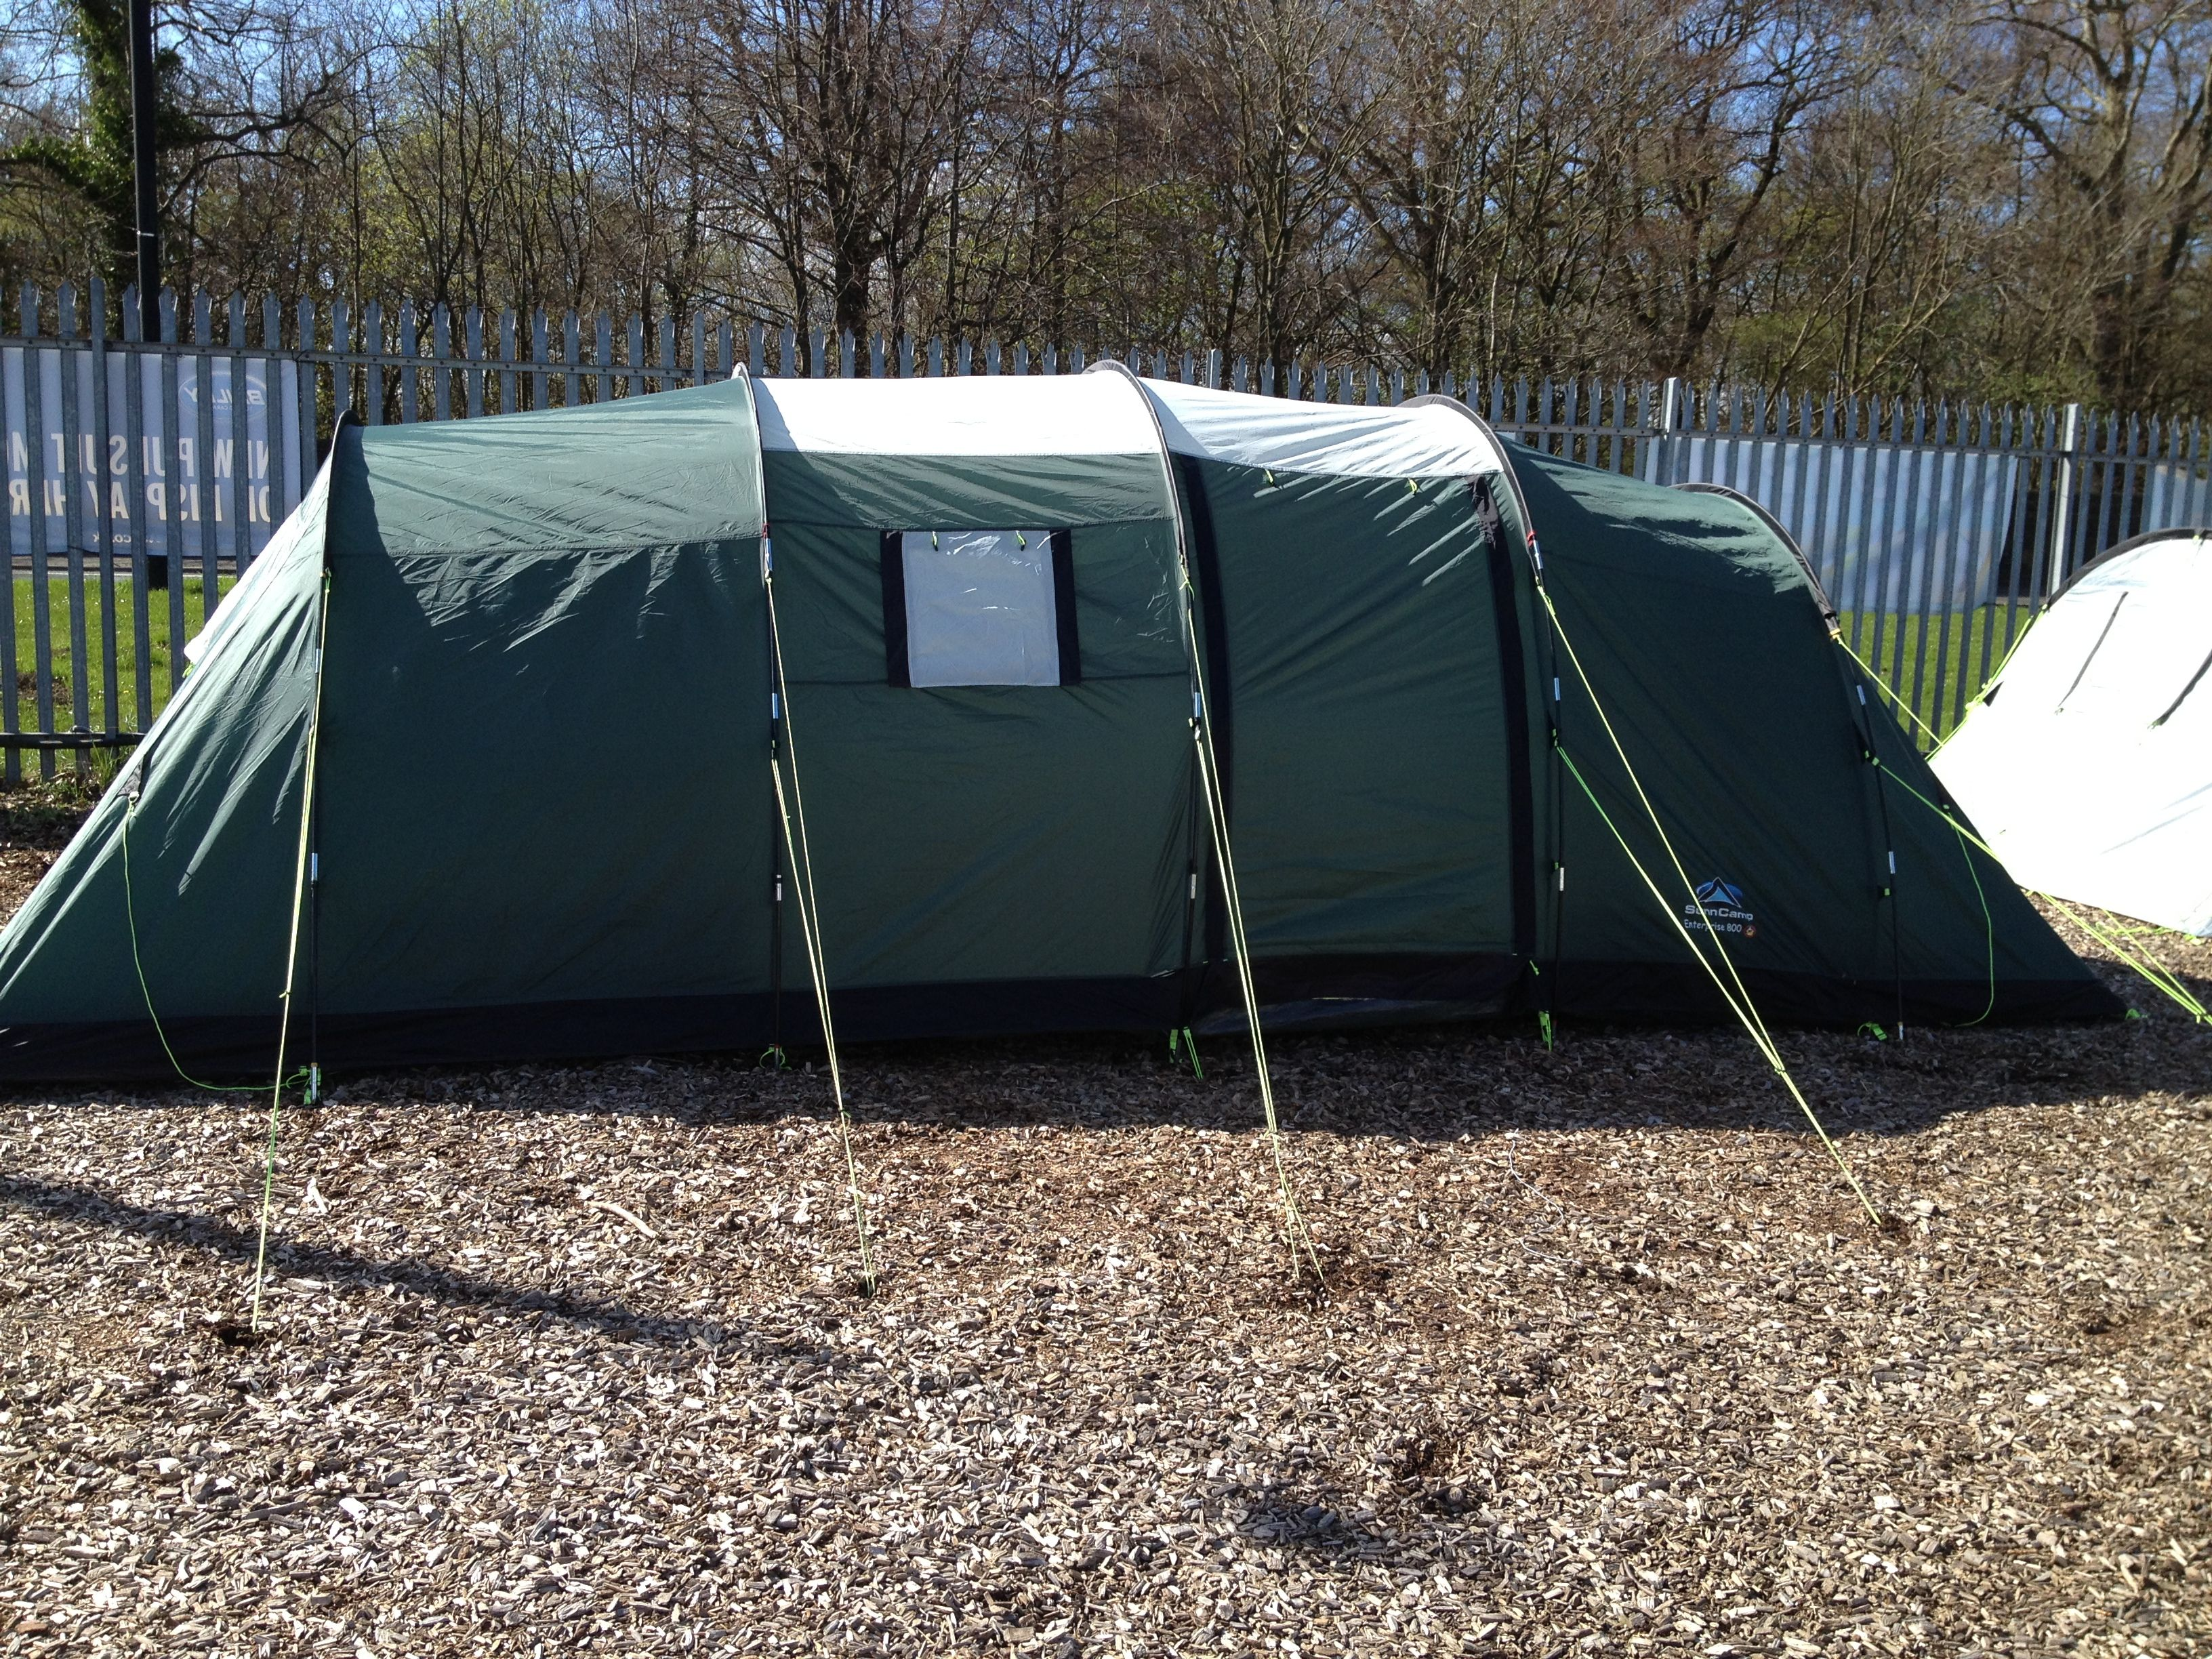 Sunncamp Epic 600 6 Berth INFLATABLE Tent Excellent For Families Or Touring Only 87499 At Awnings Direct